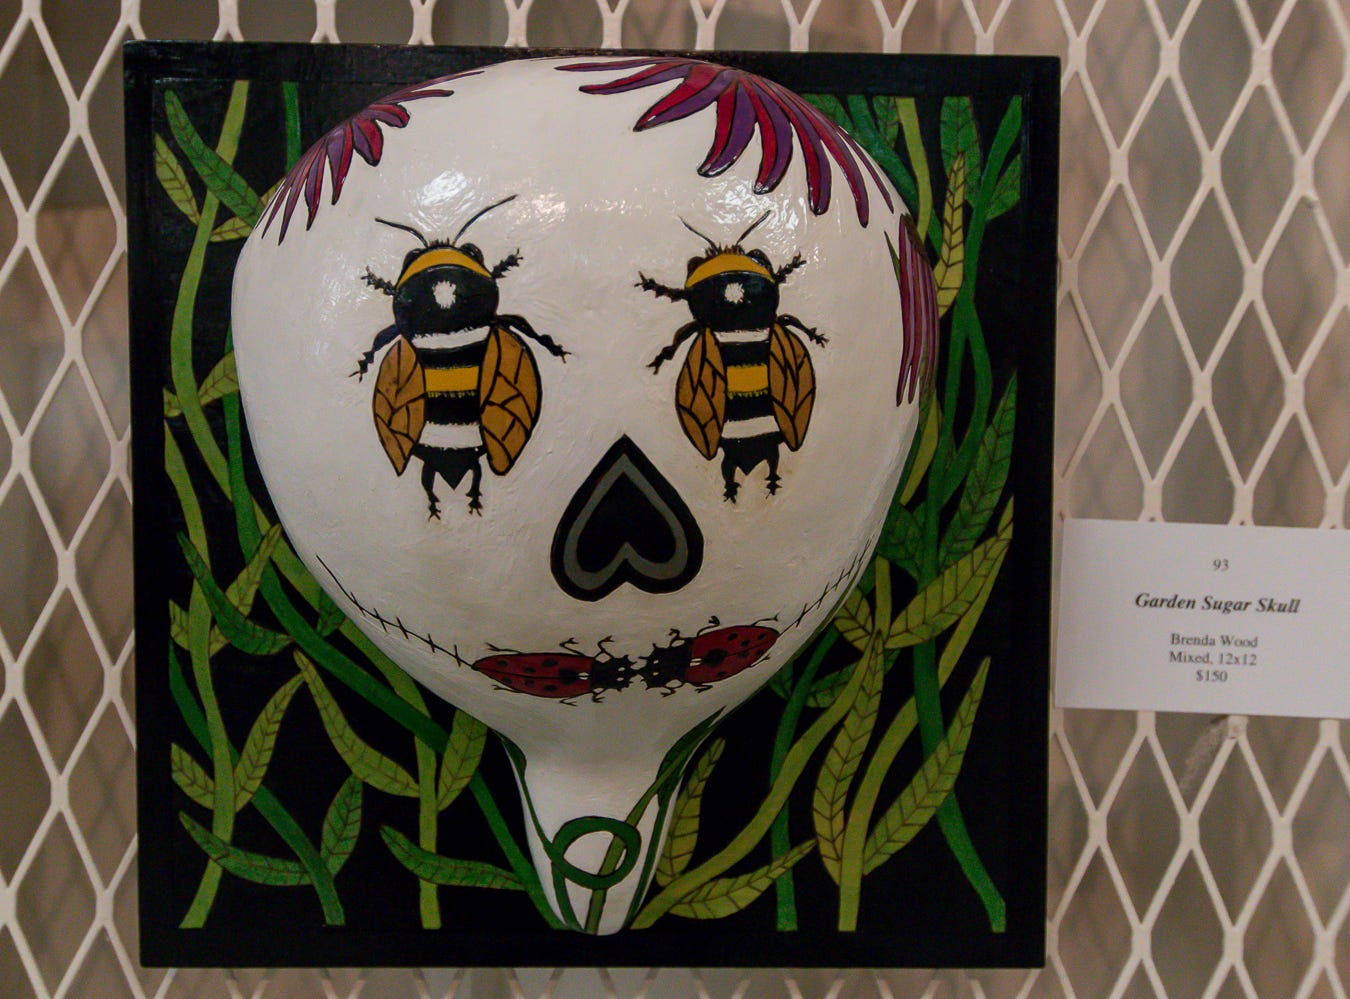 """Garden Sugar Skull,"" a 12""x12"" mixed media piece by Brenda Wood, is among over one hundred pieces on display in the Fine Arts Exhibition at the Pensacola Interstate Fair on Wednesday, October 17, 2018."